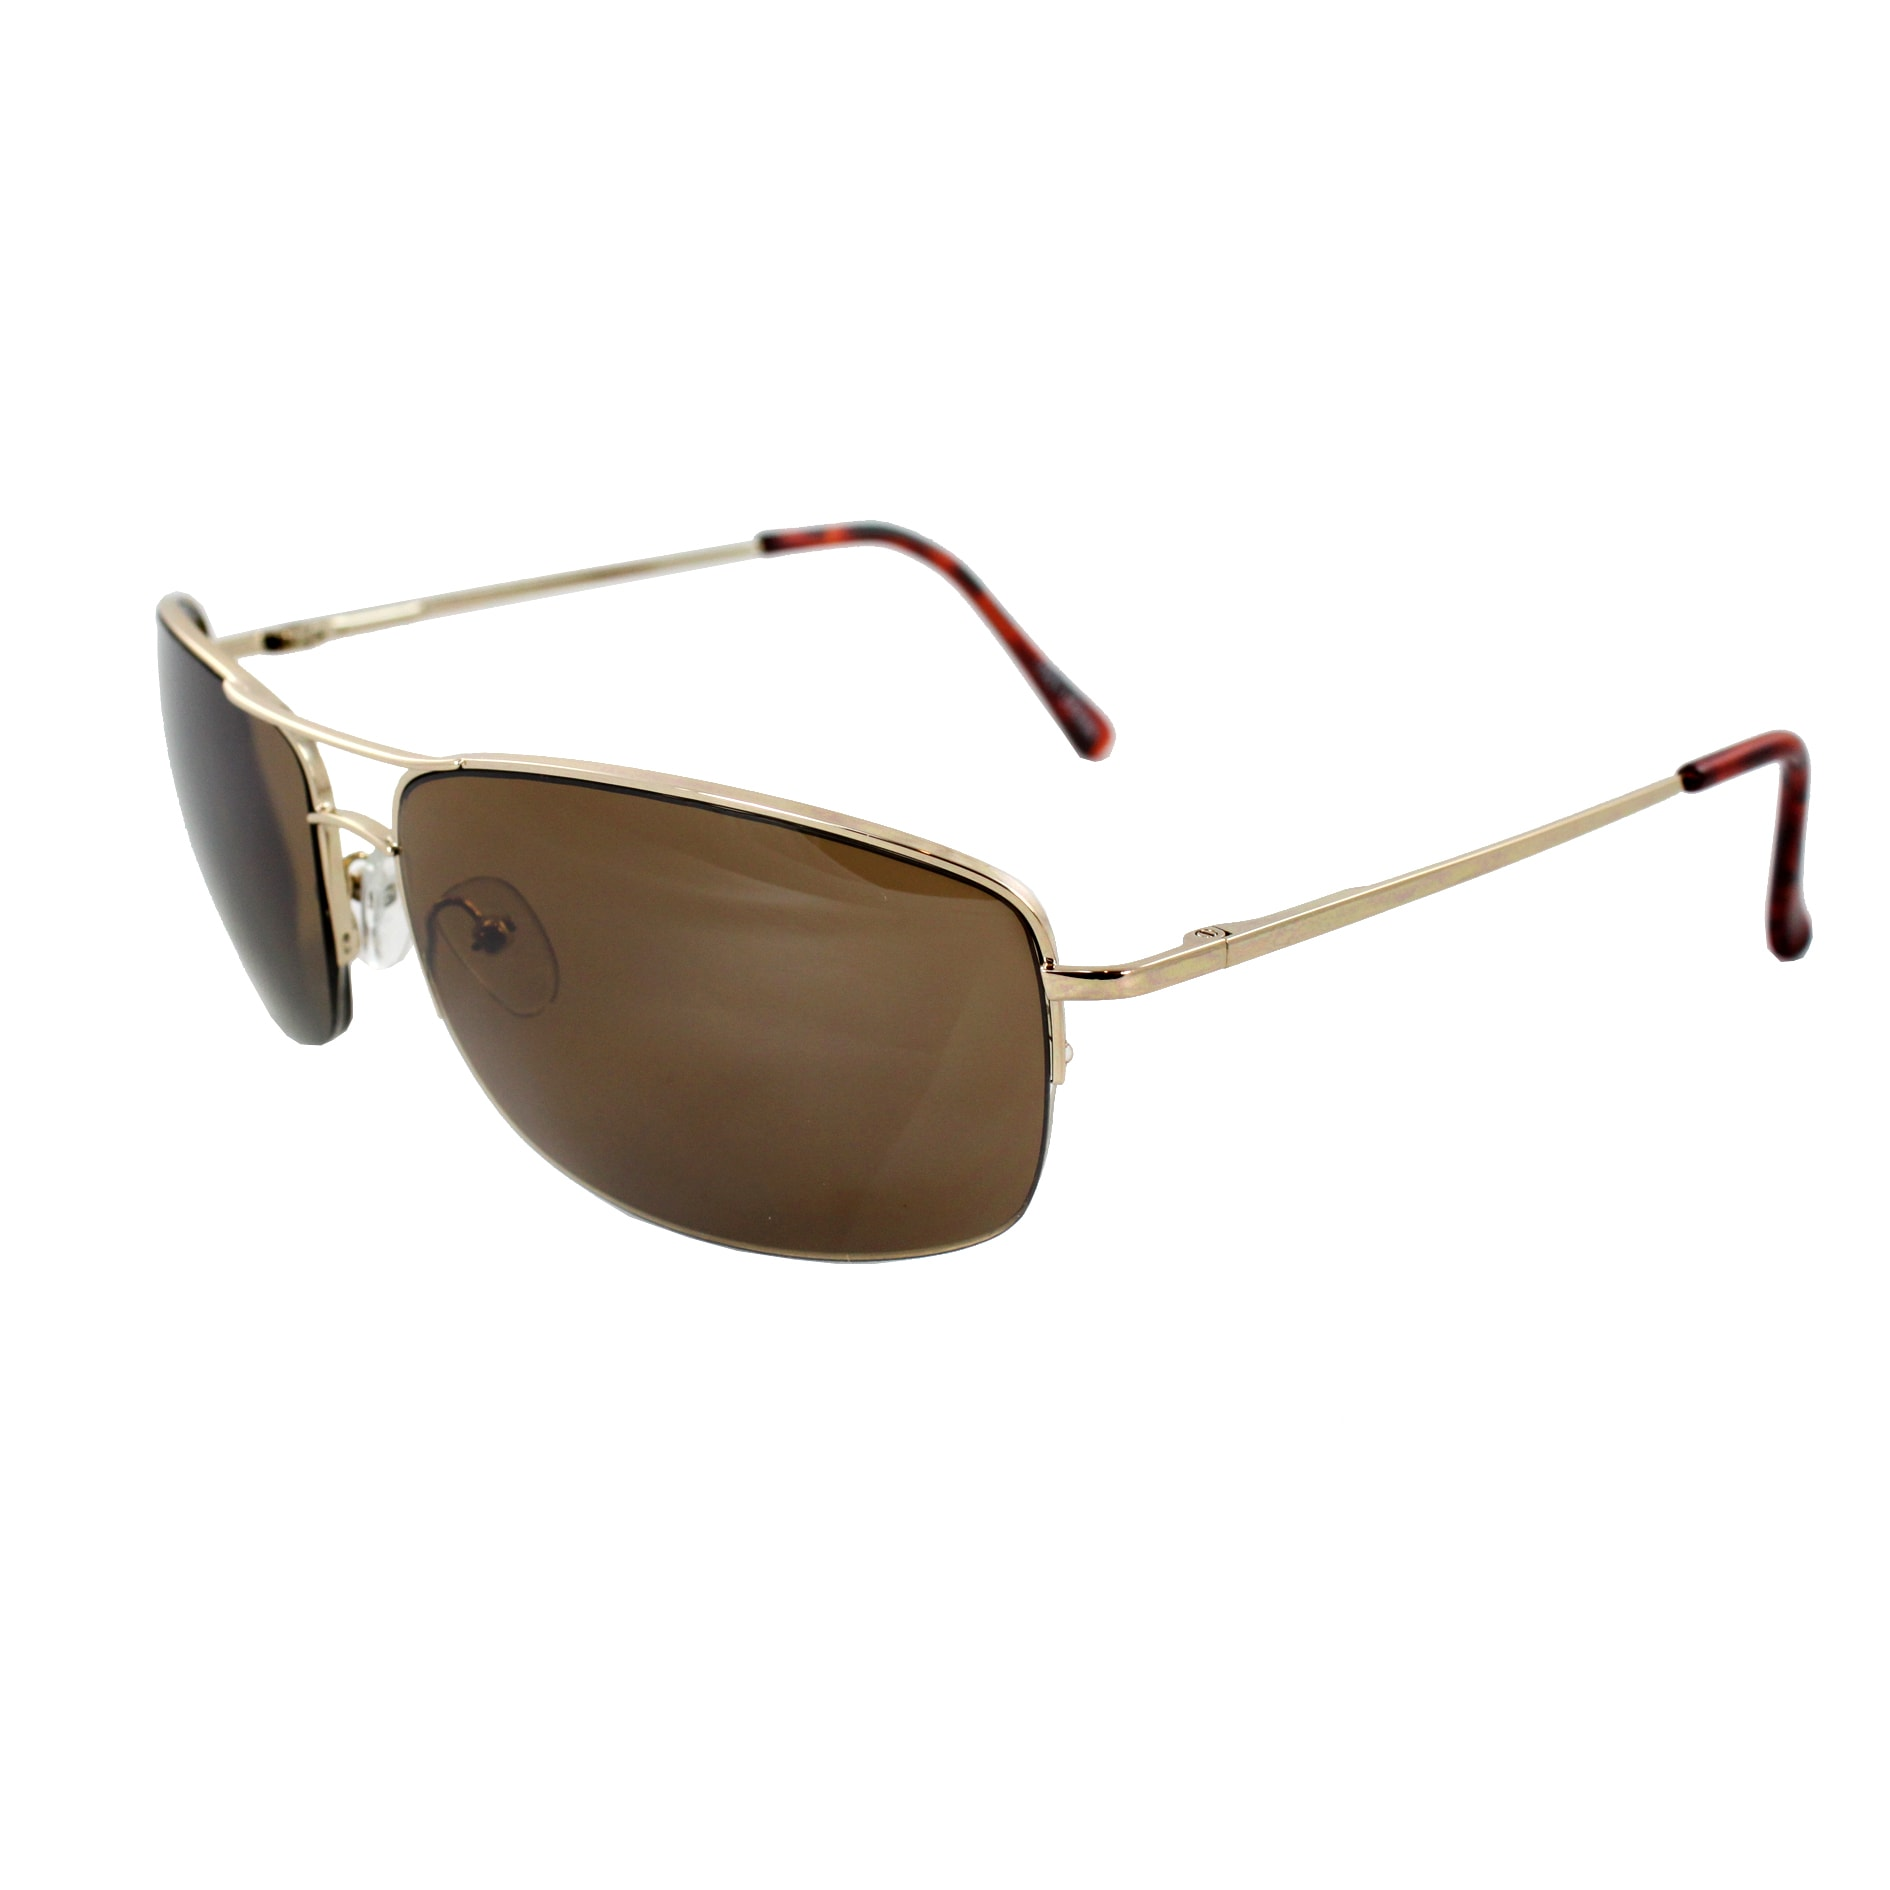 a1053c0d03e58 Shop Semi-Rimless Fashion Sunglasses Gold Frame with Brown Lenses for Women  and Men - Free Shipping On Orders Over  45 - Overstock - 6724975